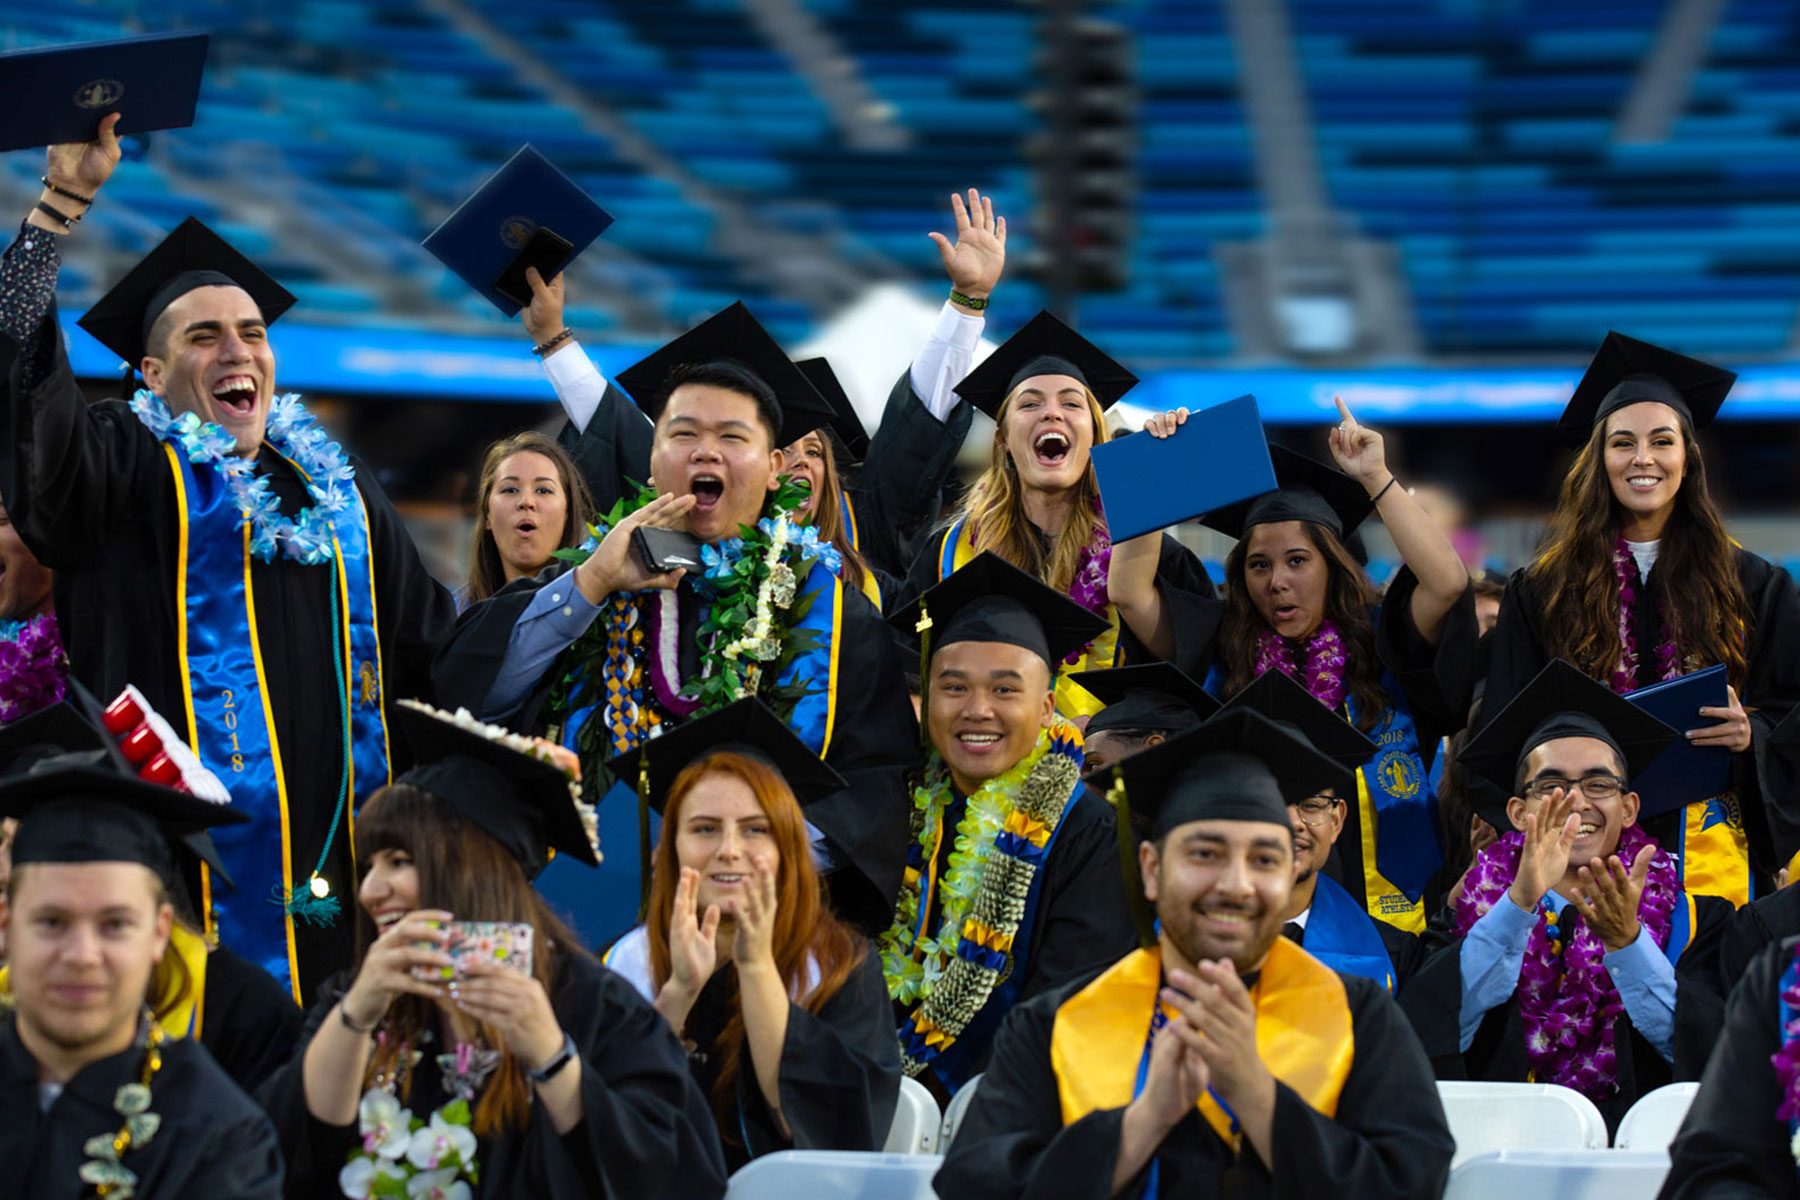 SJSU graduates at commencement ceremony